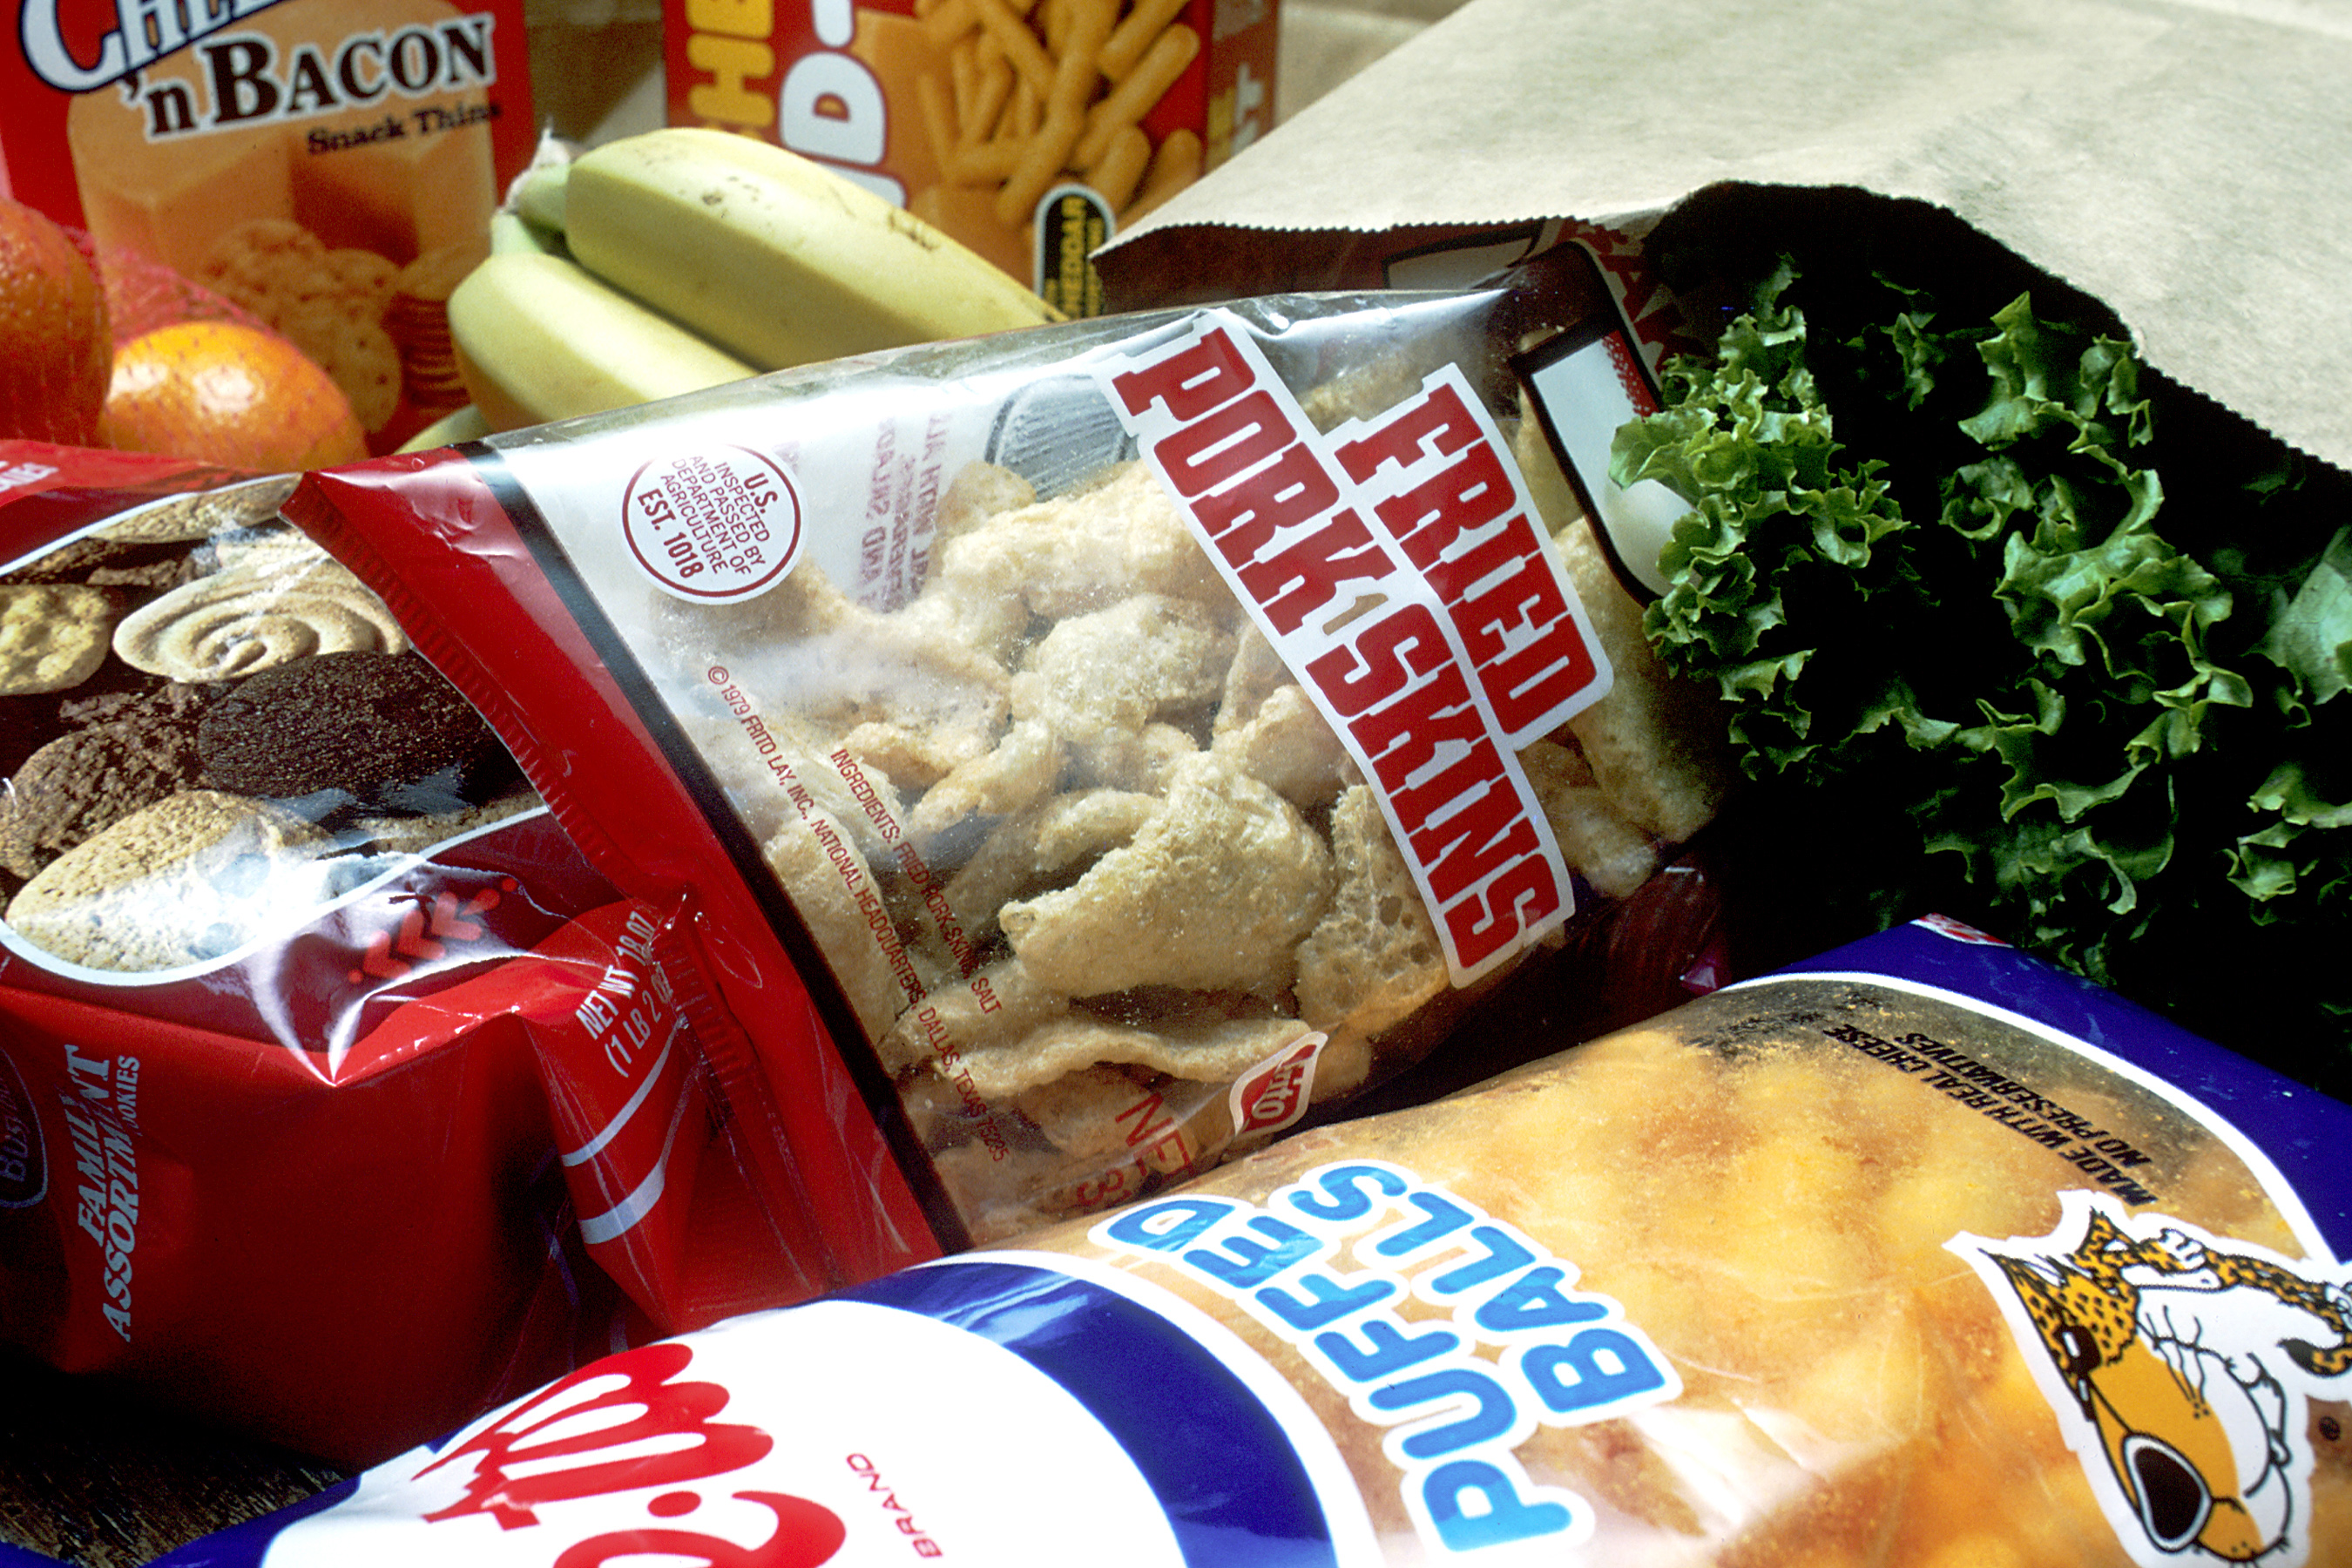 A bag of groceries containing Cheetos, fried pork skins, cookies, cheddar and bacon crackers, bananas, oranges and lettuce.